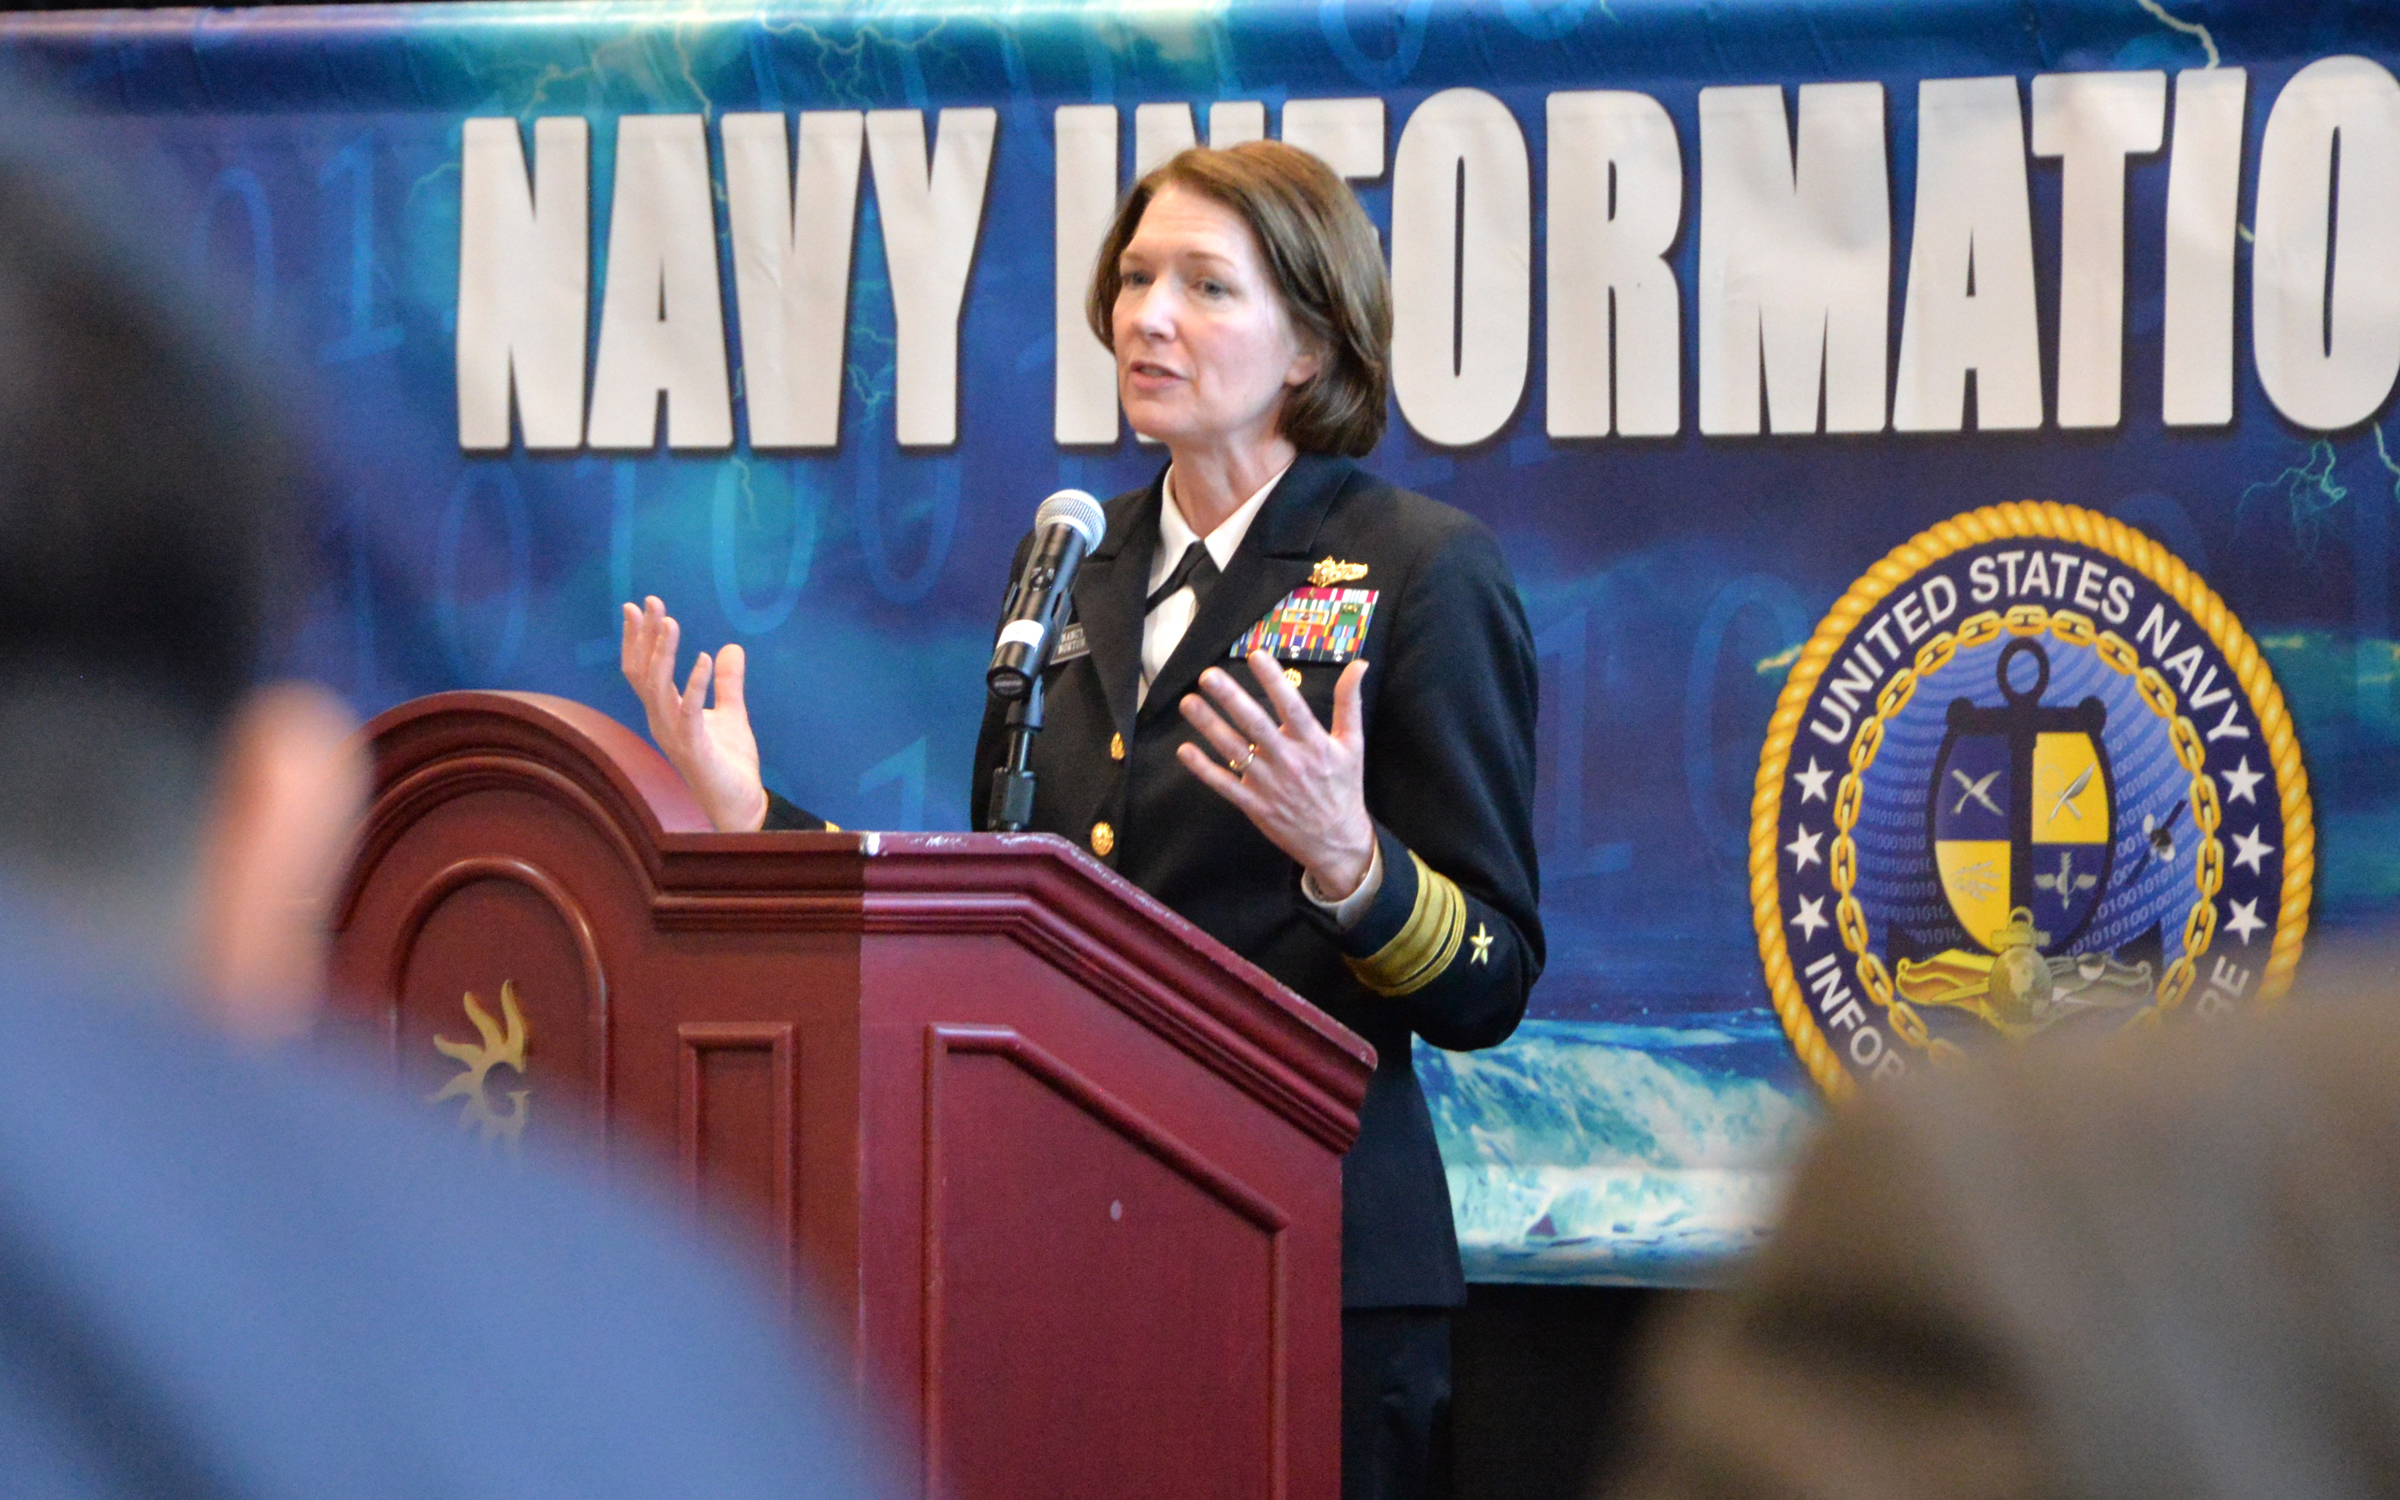 170403-N-UN340-004 National Harbor, Md. (Apr. 3, 2017) Rear Adm. Nancy Norton, formerly Director of Warfare Integration for Information Warfare (OPNAV N2N6F) /Deputy Director, provides a Navy cybersecurity information warfare update from her OPNAV Perspective in the Navy Information Warfare Pavilion at the 2017 Sea, Air and Space (SAS) exposition. The Information warfare pavilion is presented by a partnership between the Office of the Deputy Chief of Naval Operations for Information Warfare (OPNAV N2N6); Commander, U.S. Fleet Cyber Command/Commander, U.S. 10th Fleet (CFCC/C10F); Space and Naval Warfare Systems Command (SPAWAR) and Commander, Naval Information Forces (NAVIFOR), all key players in the Navy's Information Warfare community. SAS, sponsored by the U.S. Navy League, is the world's largest maritime exposition and provides a venue of interaction between the maritime defense industry and U.S and international military organizations. (U.S. Navy photo by Rick Naystatt/Released)